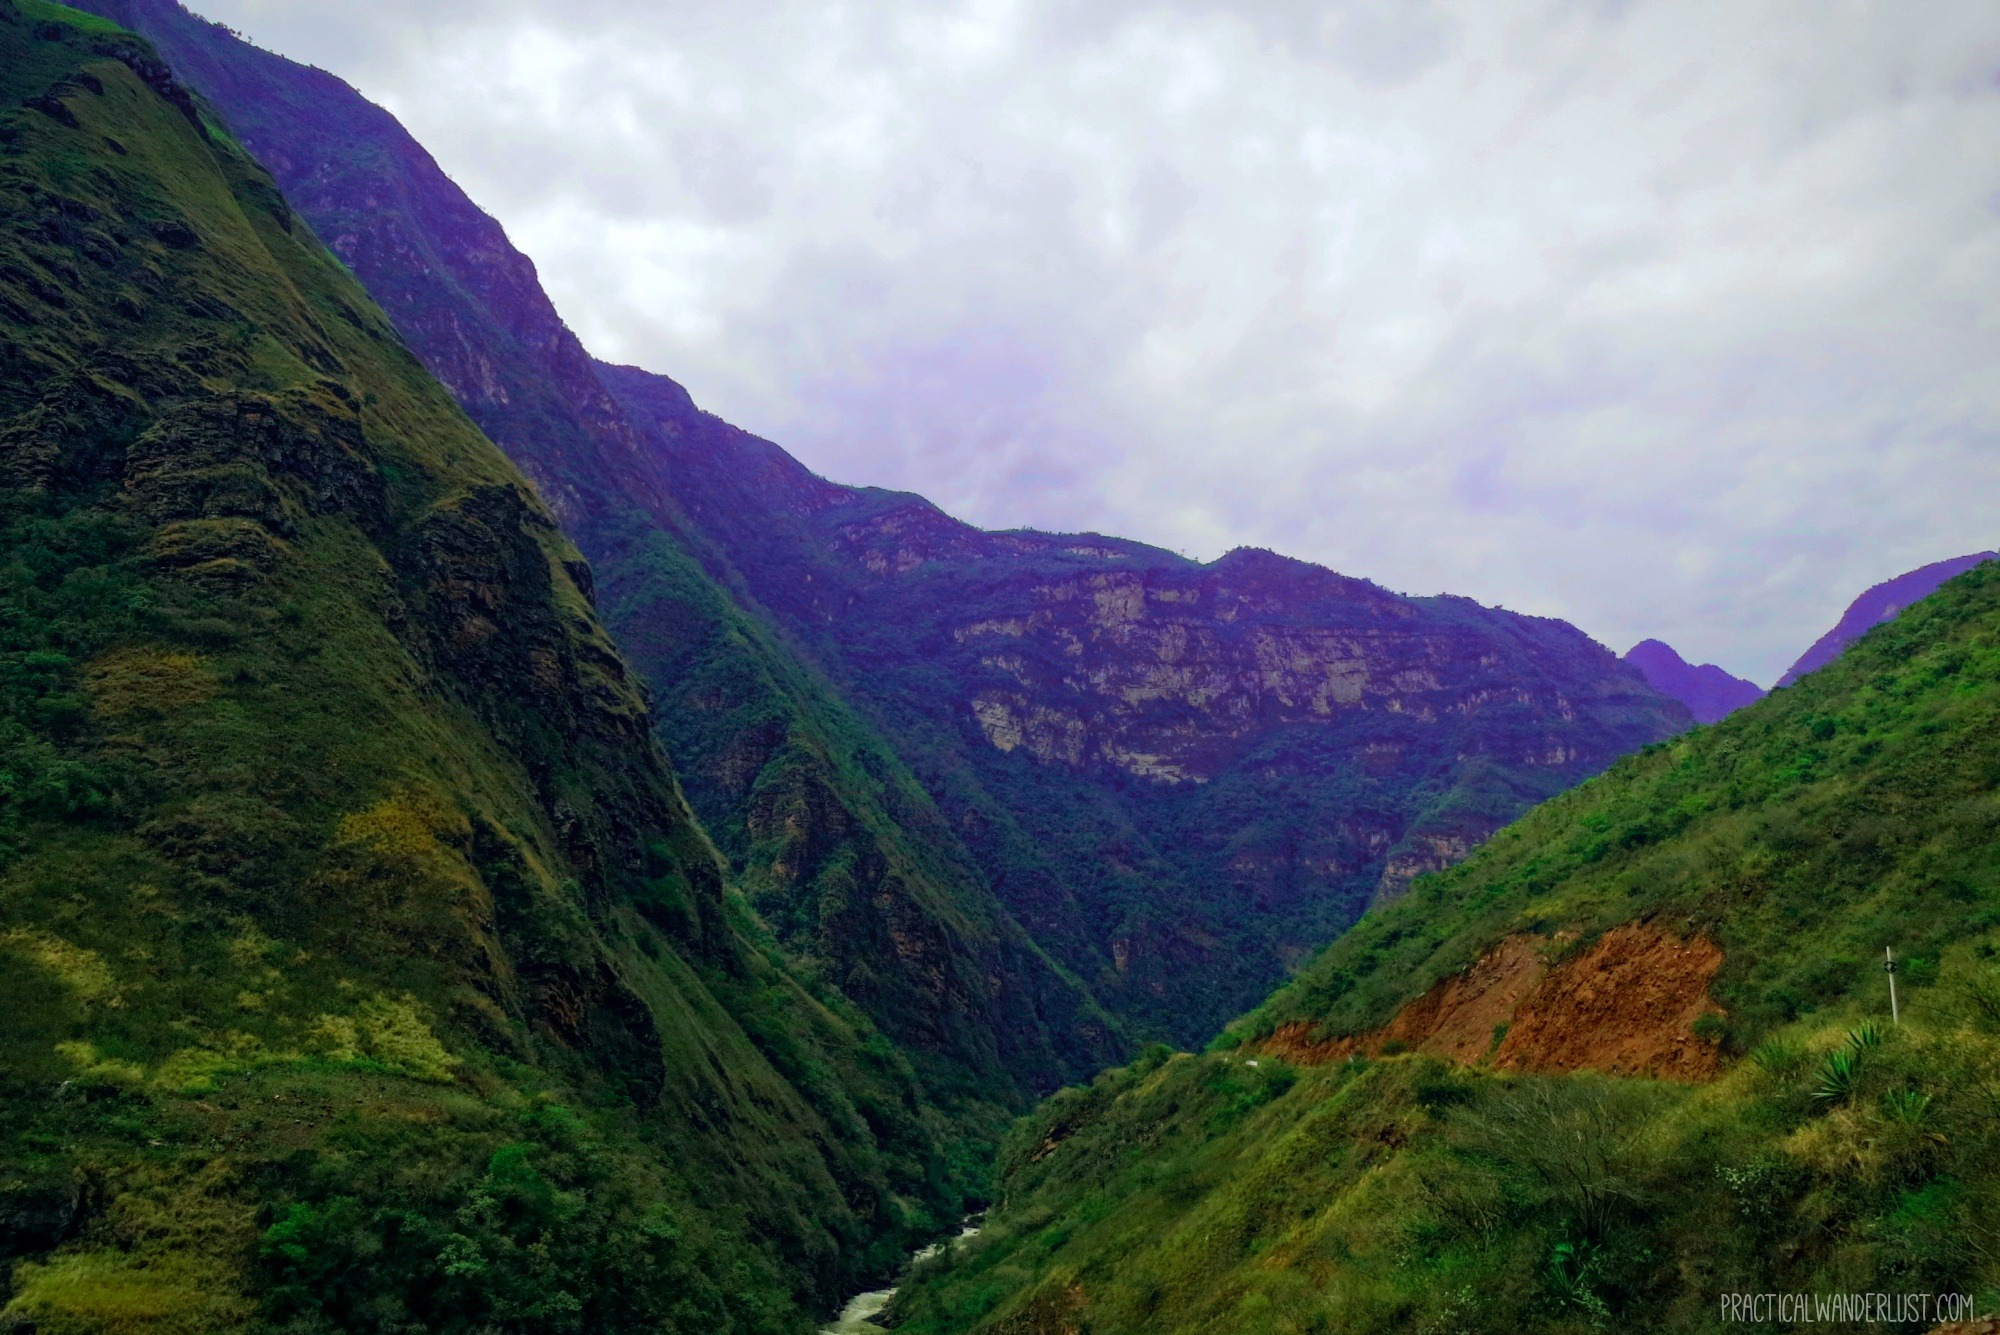 The winding mountain road in the Andes from Ecuador to Peru on the La Balsa Border Crossing